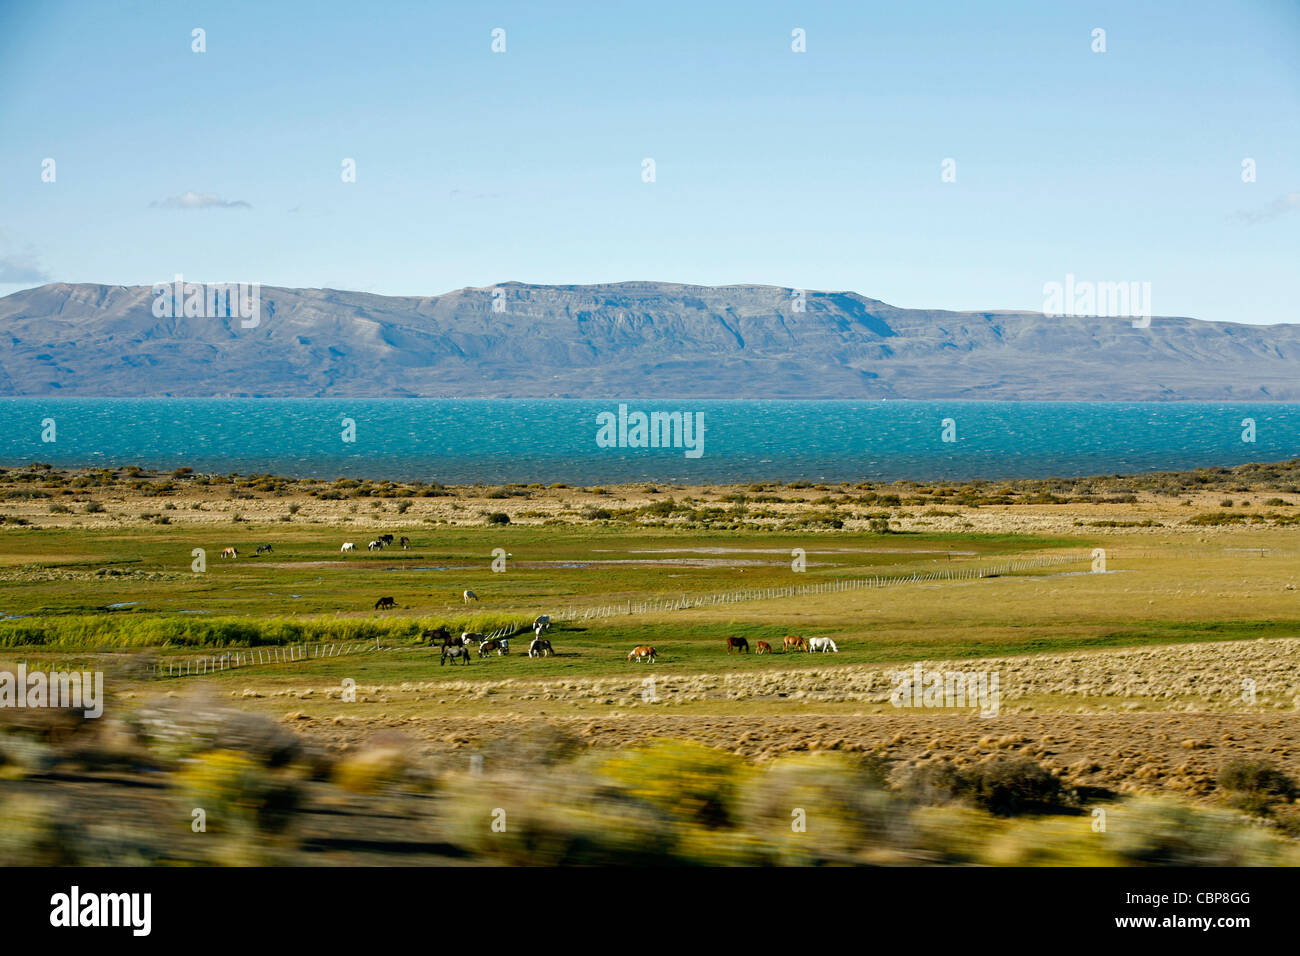 Landscape near El Calafate area with Lago Argentino on the background, Santa Cruz province. Patagonia. Argentina. - Stock Image